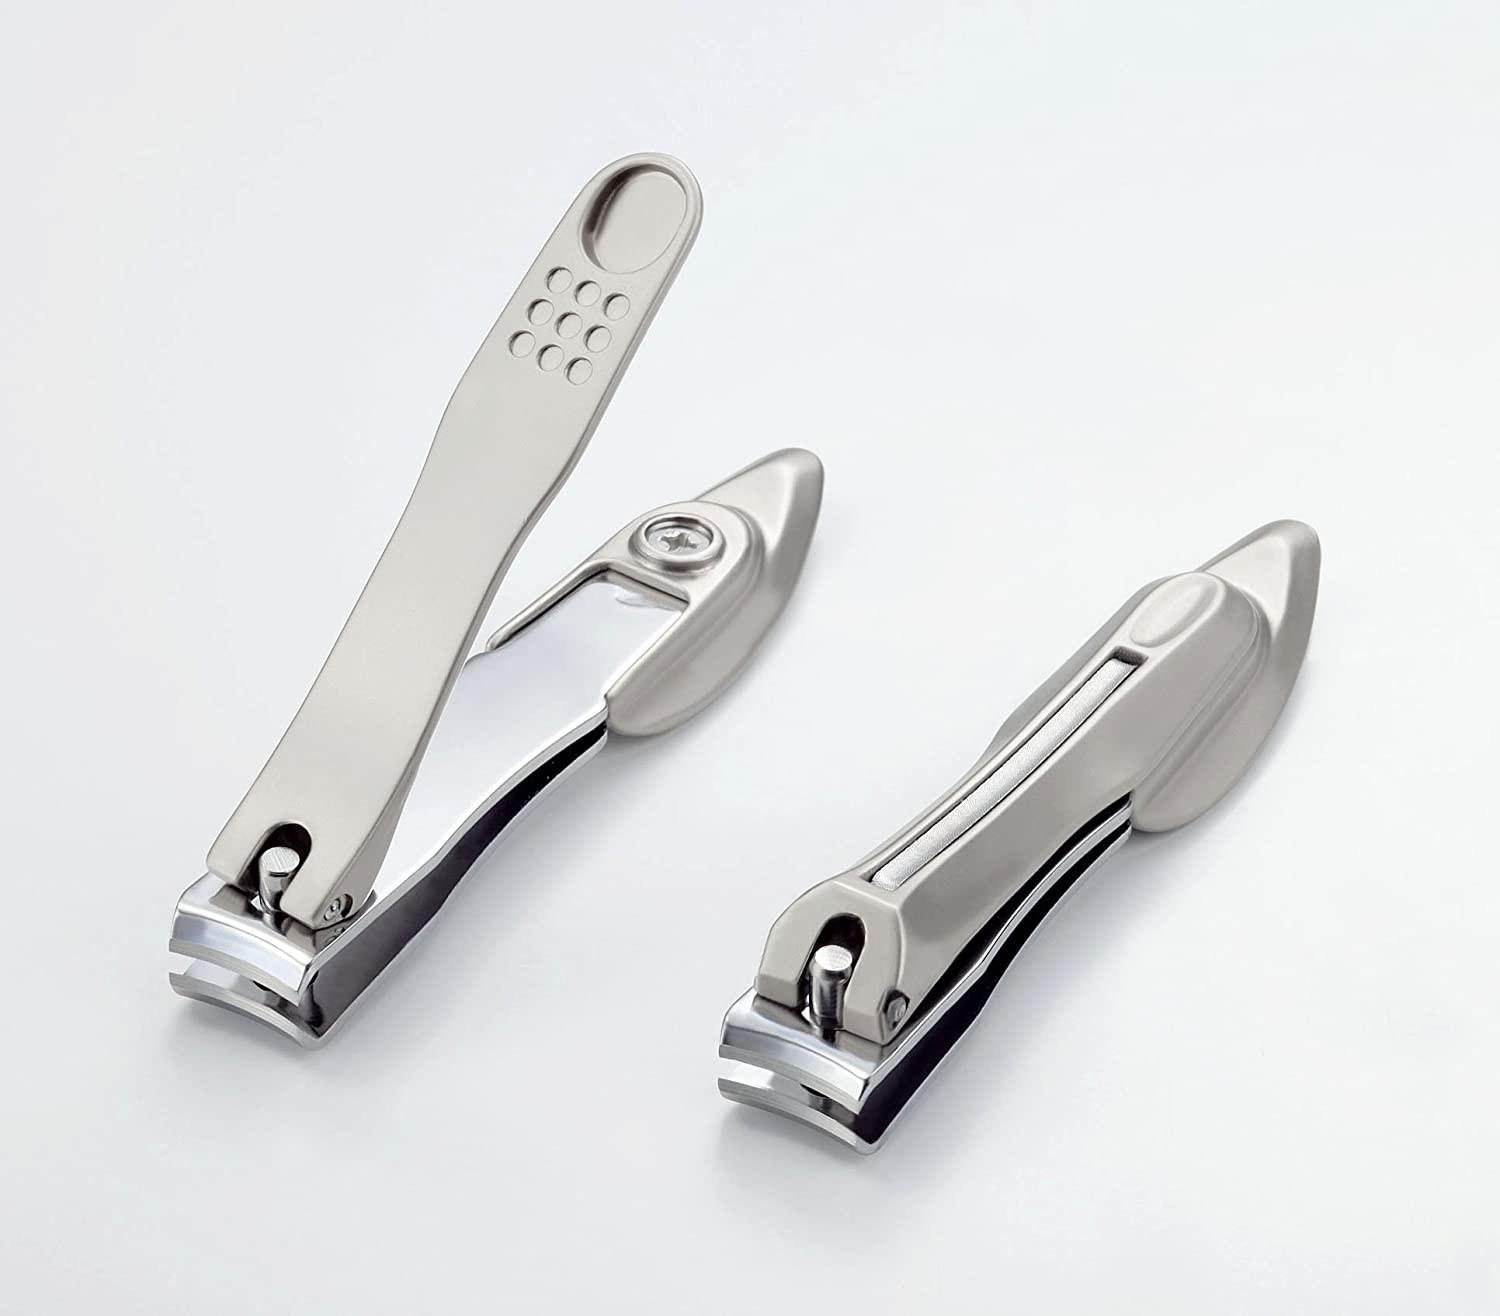 The nail clippers shown open and closed